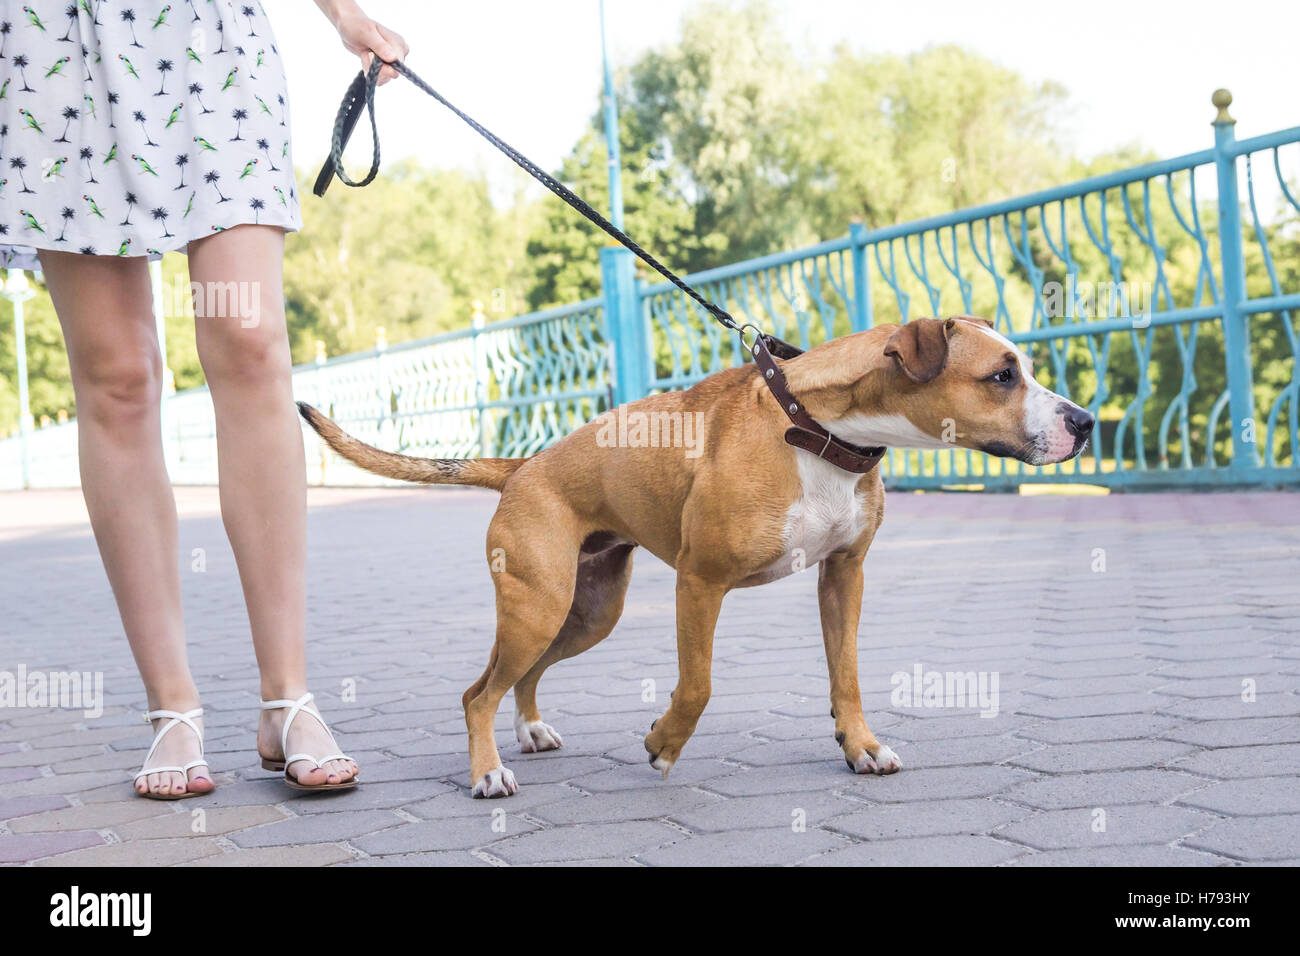 Naughty untrained dog pulling on a leash, person not controlling the dog - Stock Image